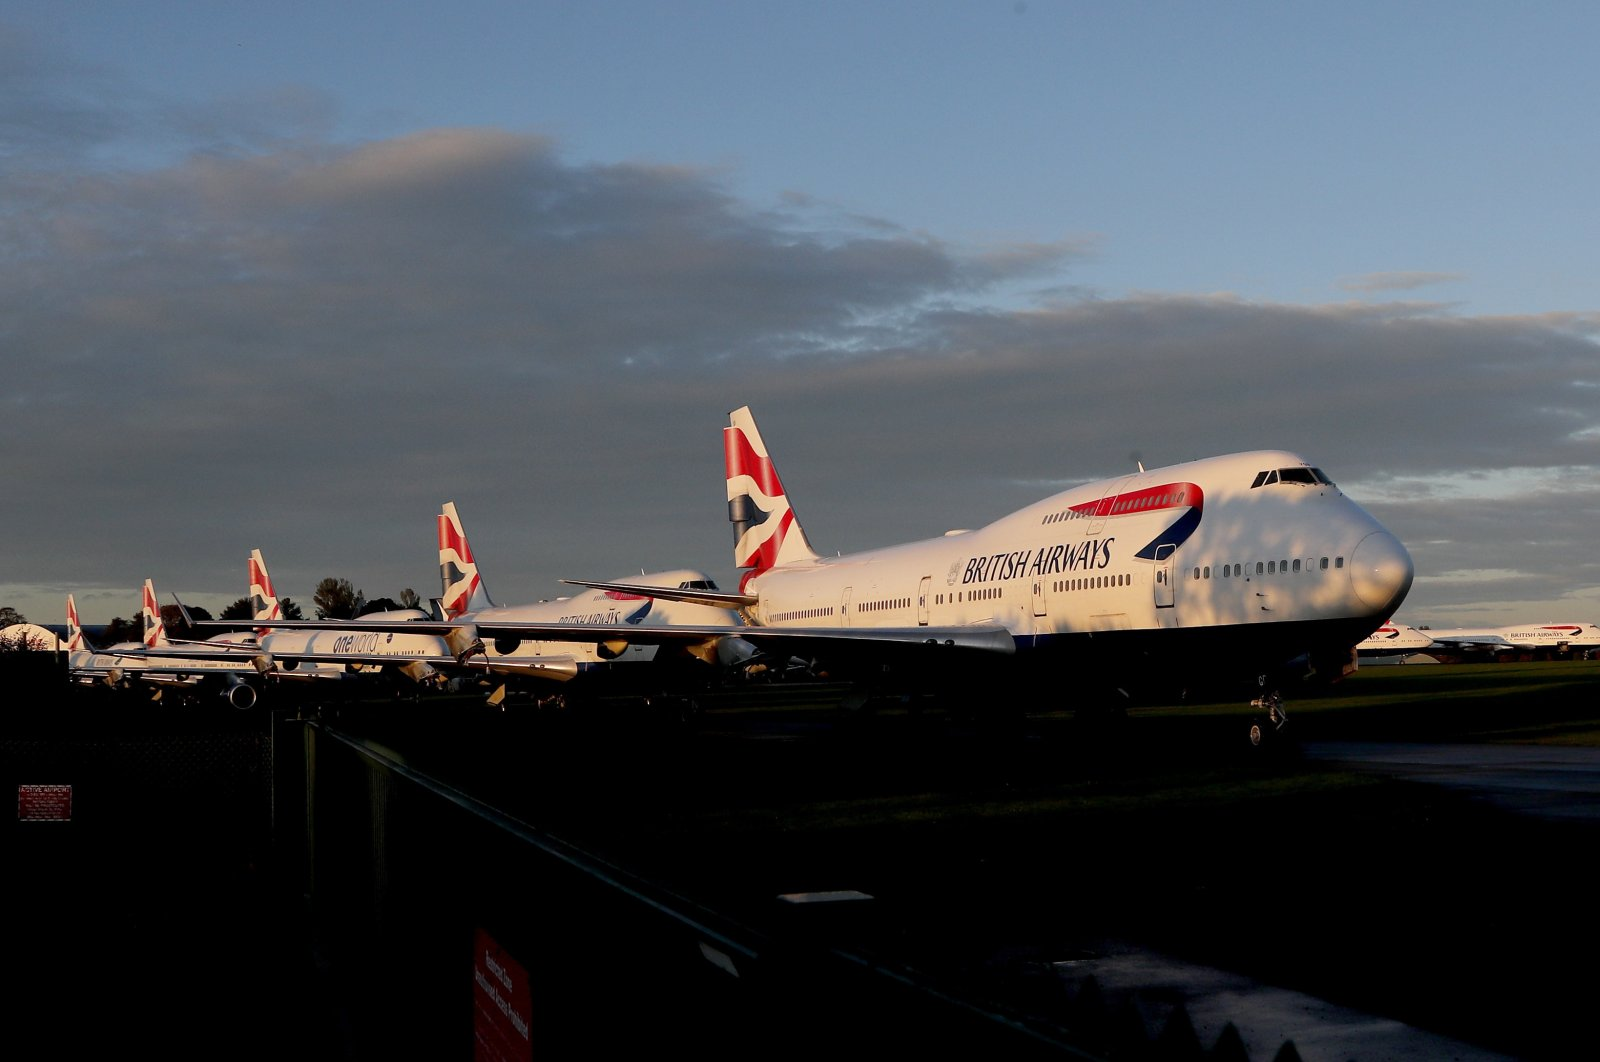 A retired British Airways Boeing 747-400 parked at Cotsworld Airport in Kemble, England, Oct. 11, 2020. (AP Photo)